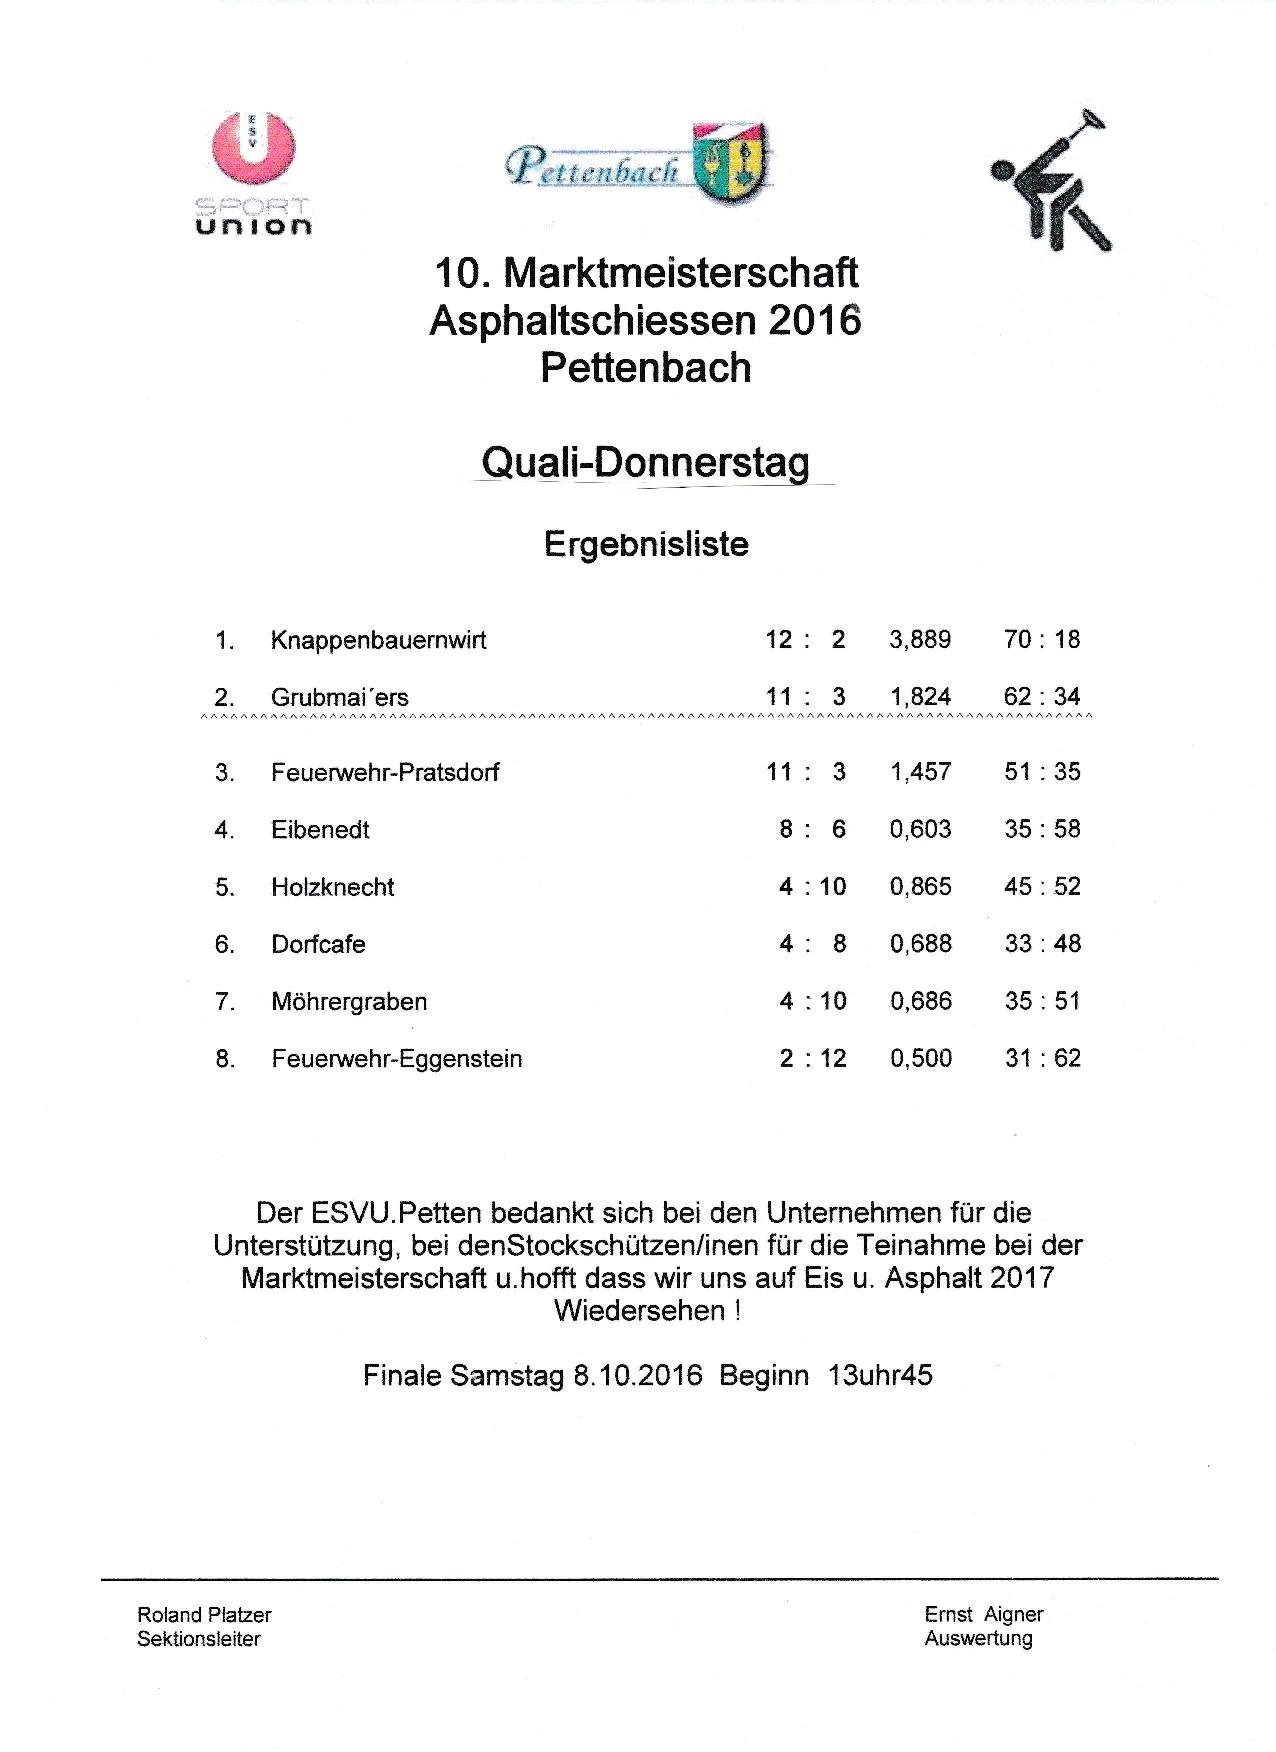 Qualifikation Donnerstag